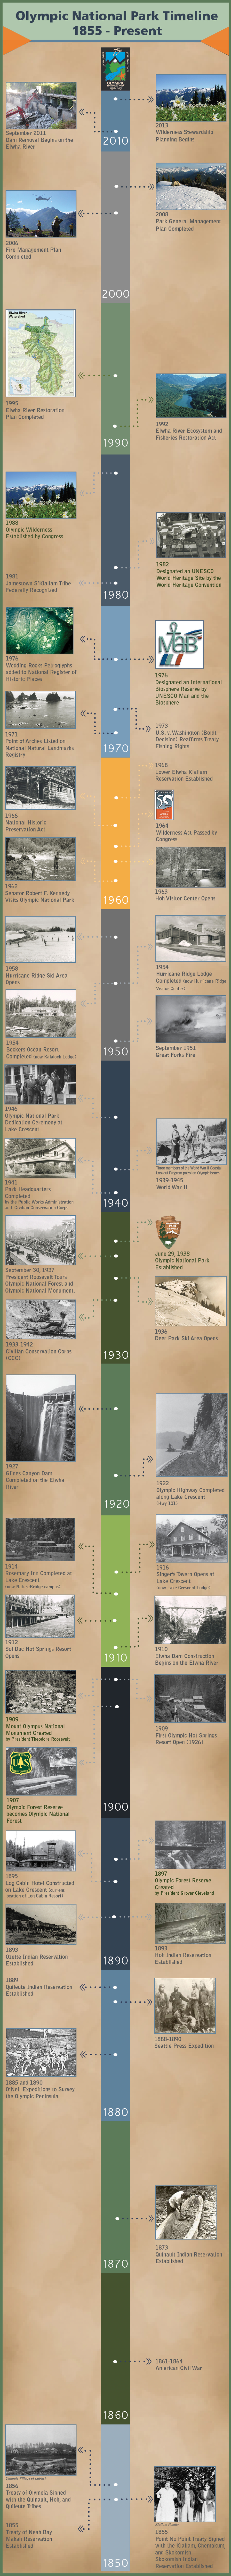 Timeline of Olympic National Park history.